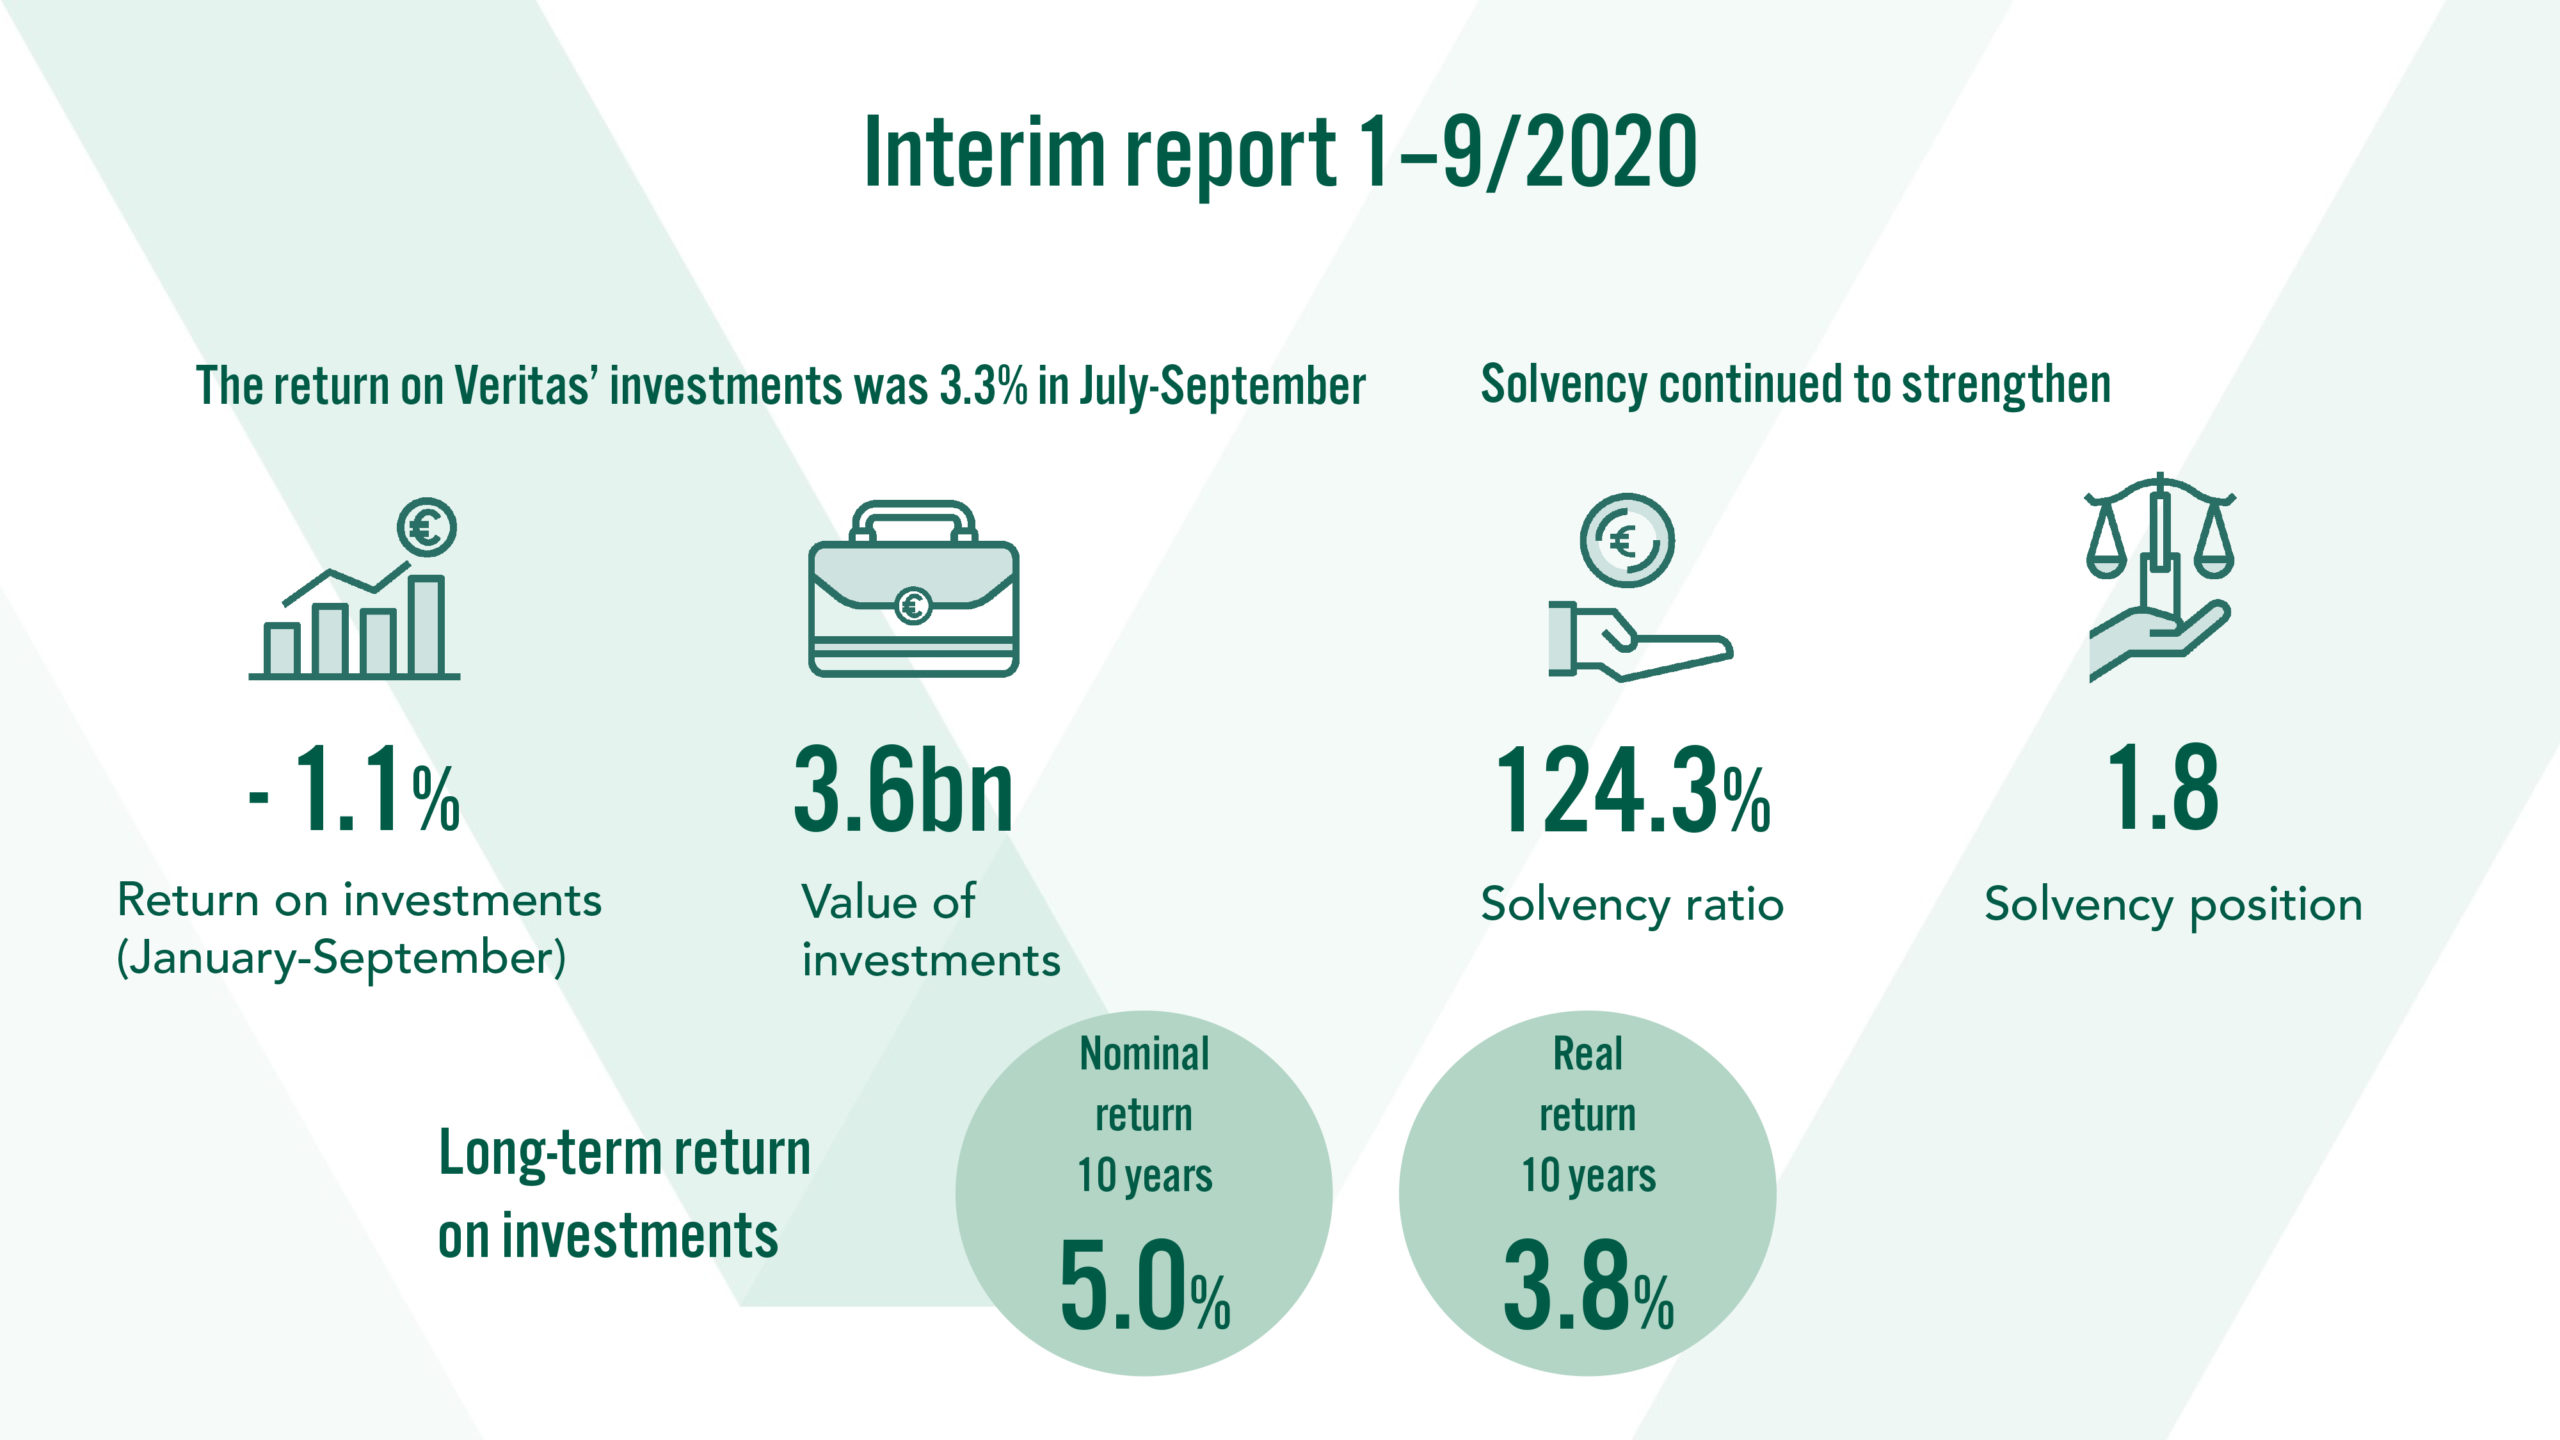 Interim report 1-9/2020. The return on Veritas' investments was 3.3% in July-September. Solvency continued to strengthen.